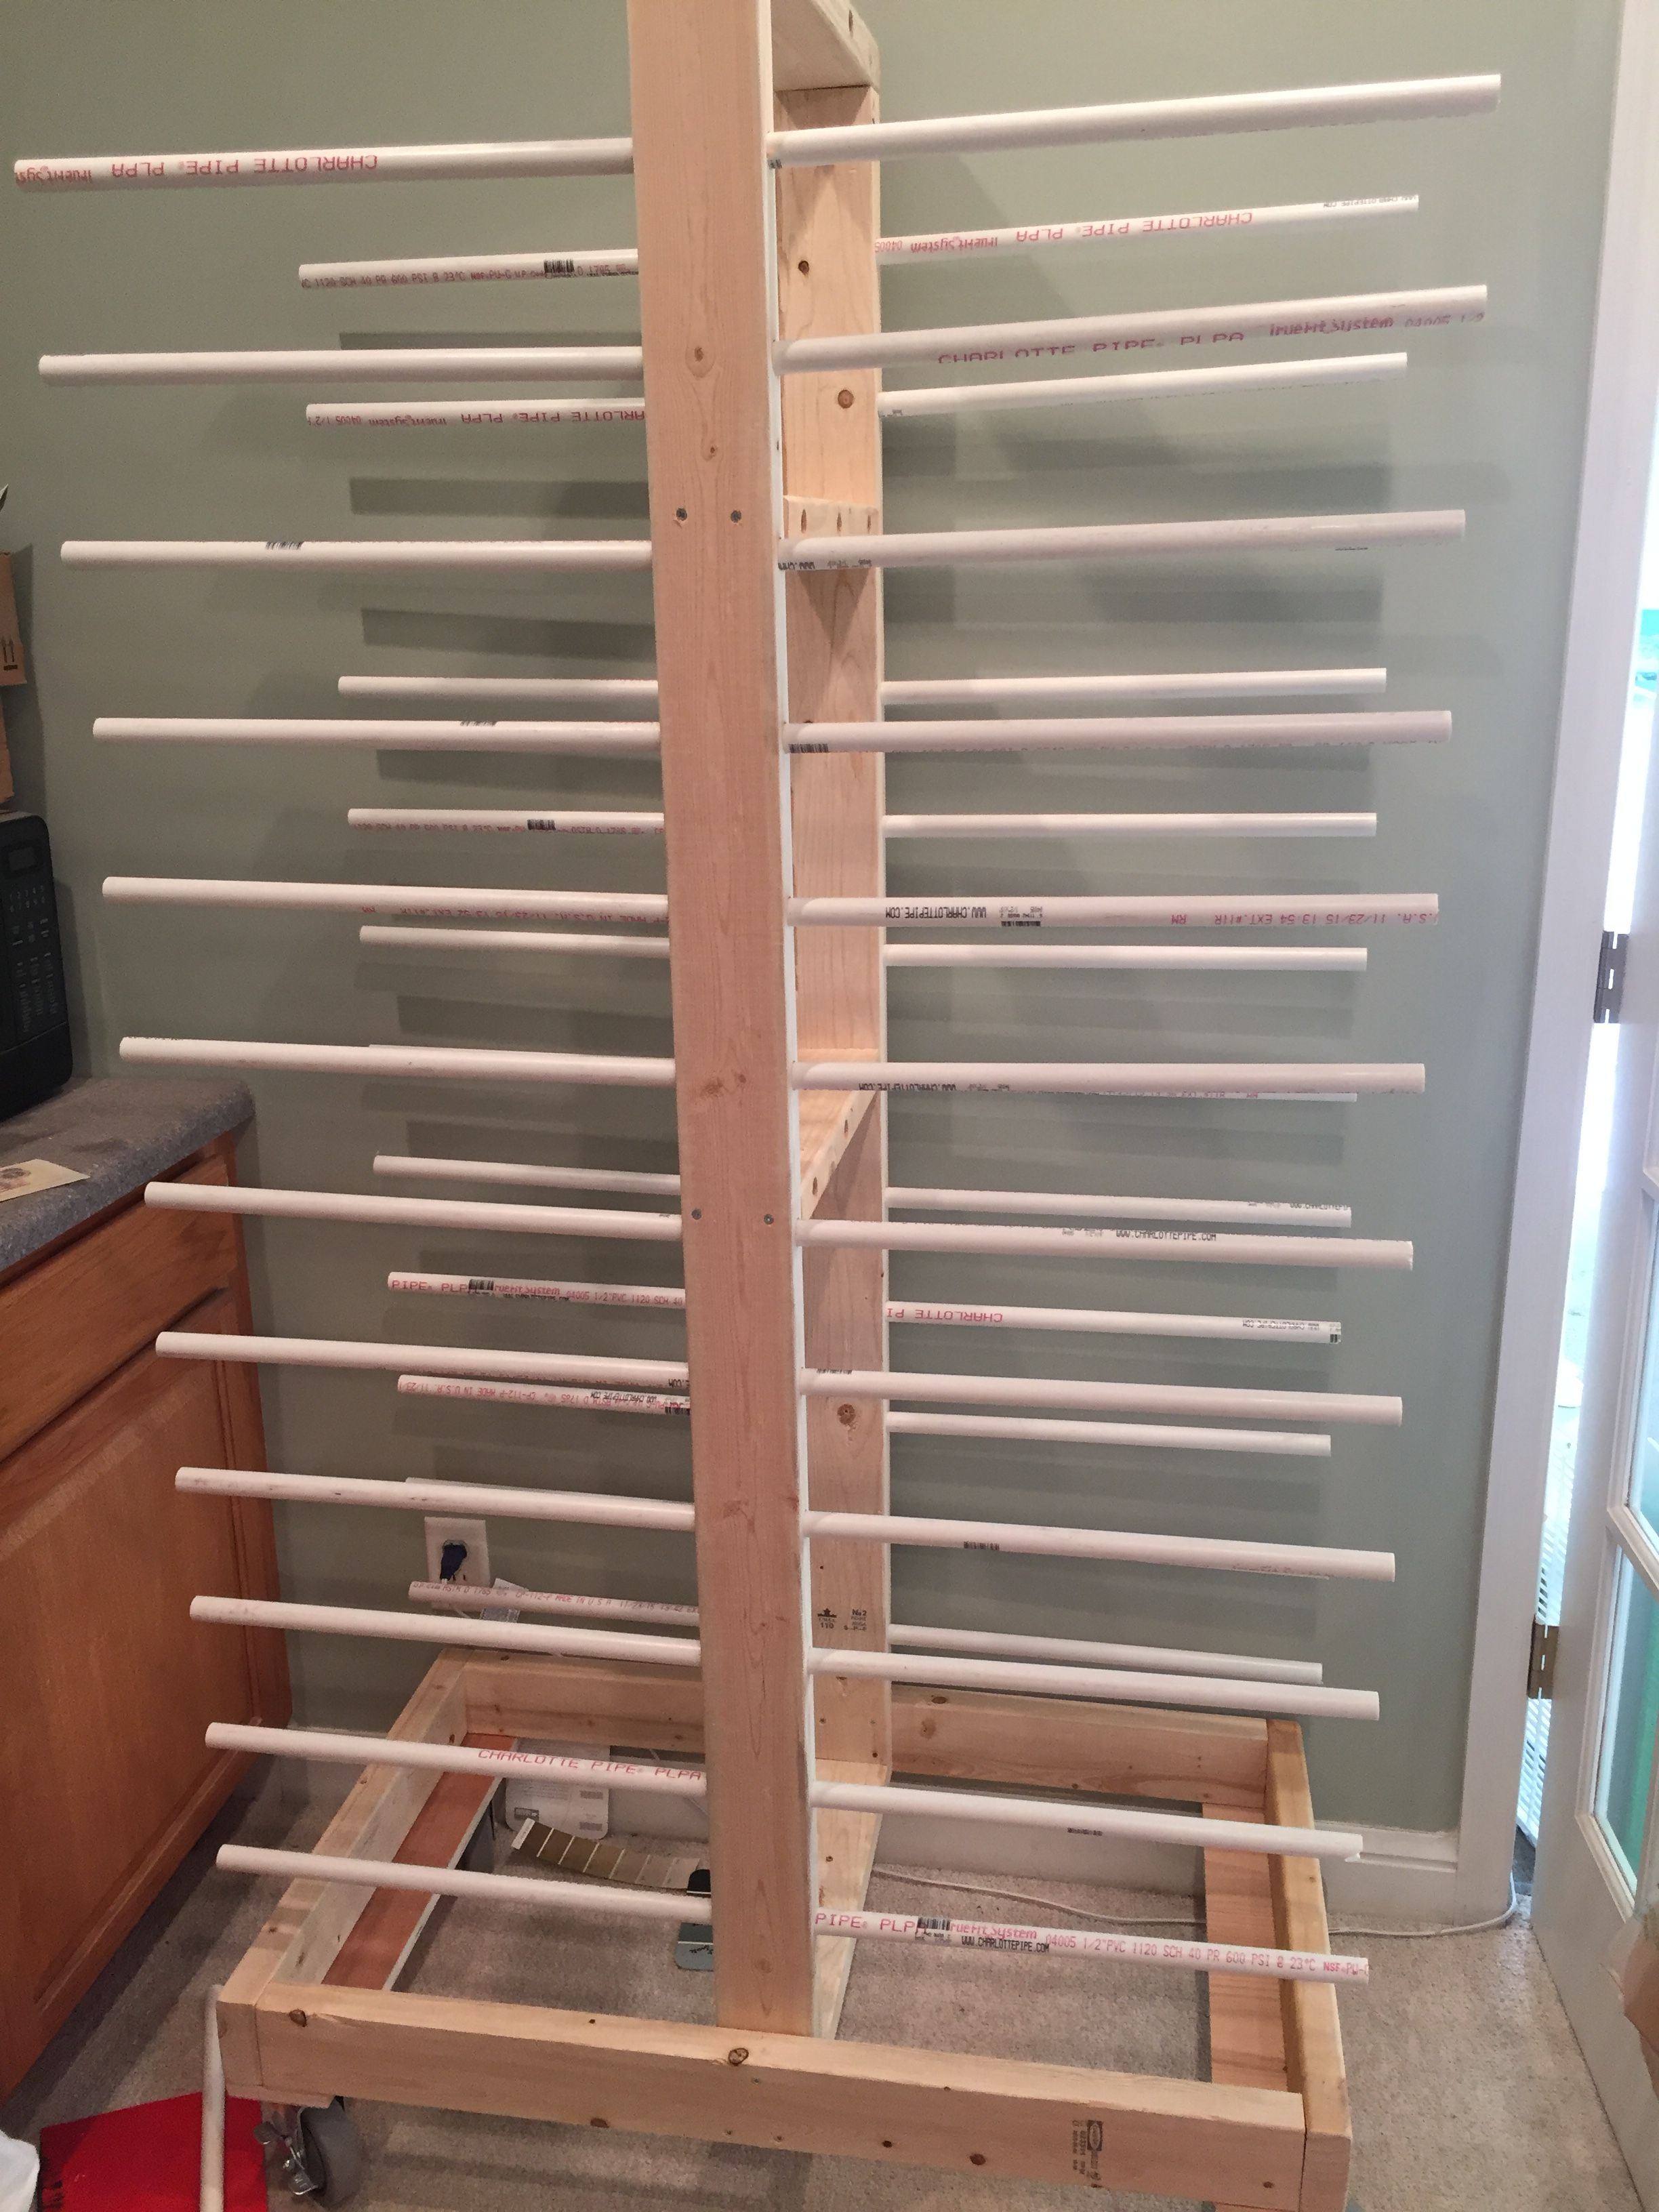 Diy Cabinet Door Drying Rack From Pvc Pipe 2x4 Lumber